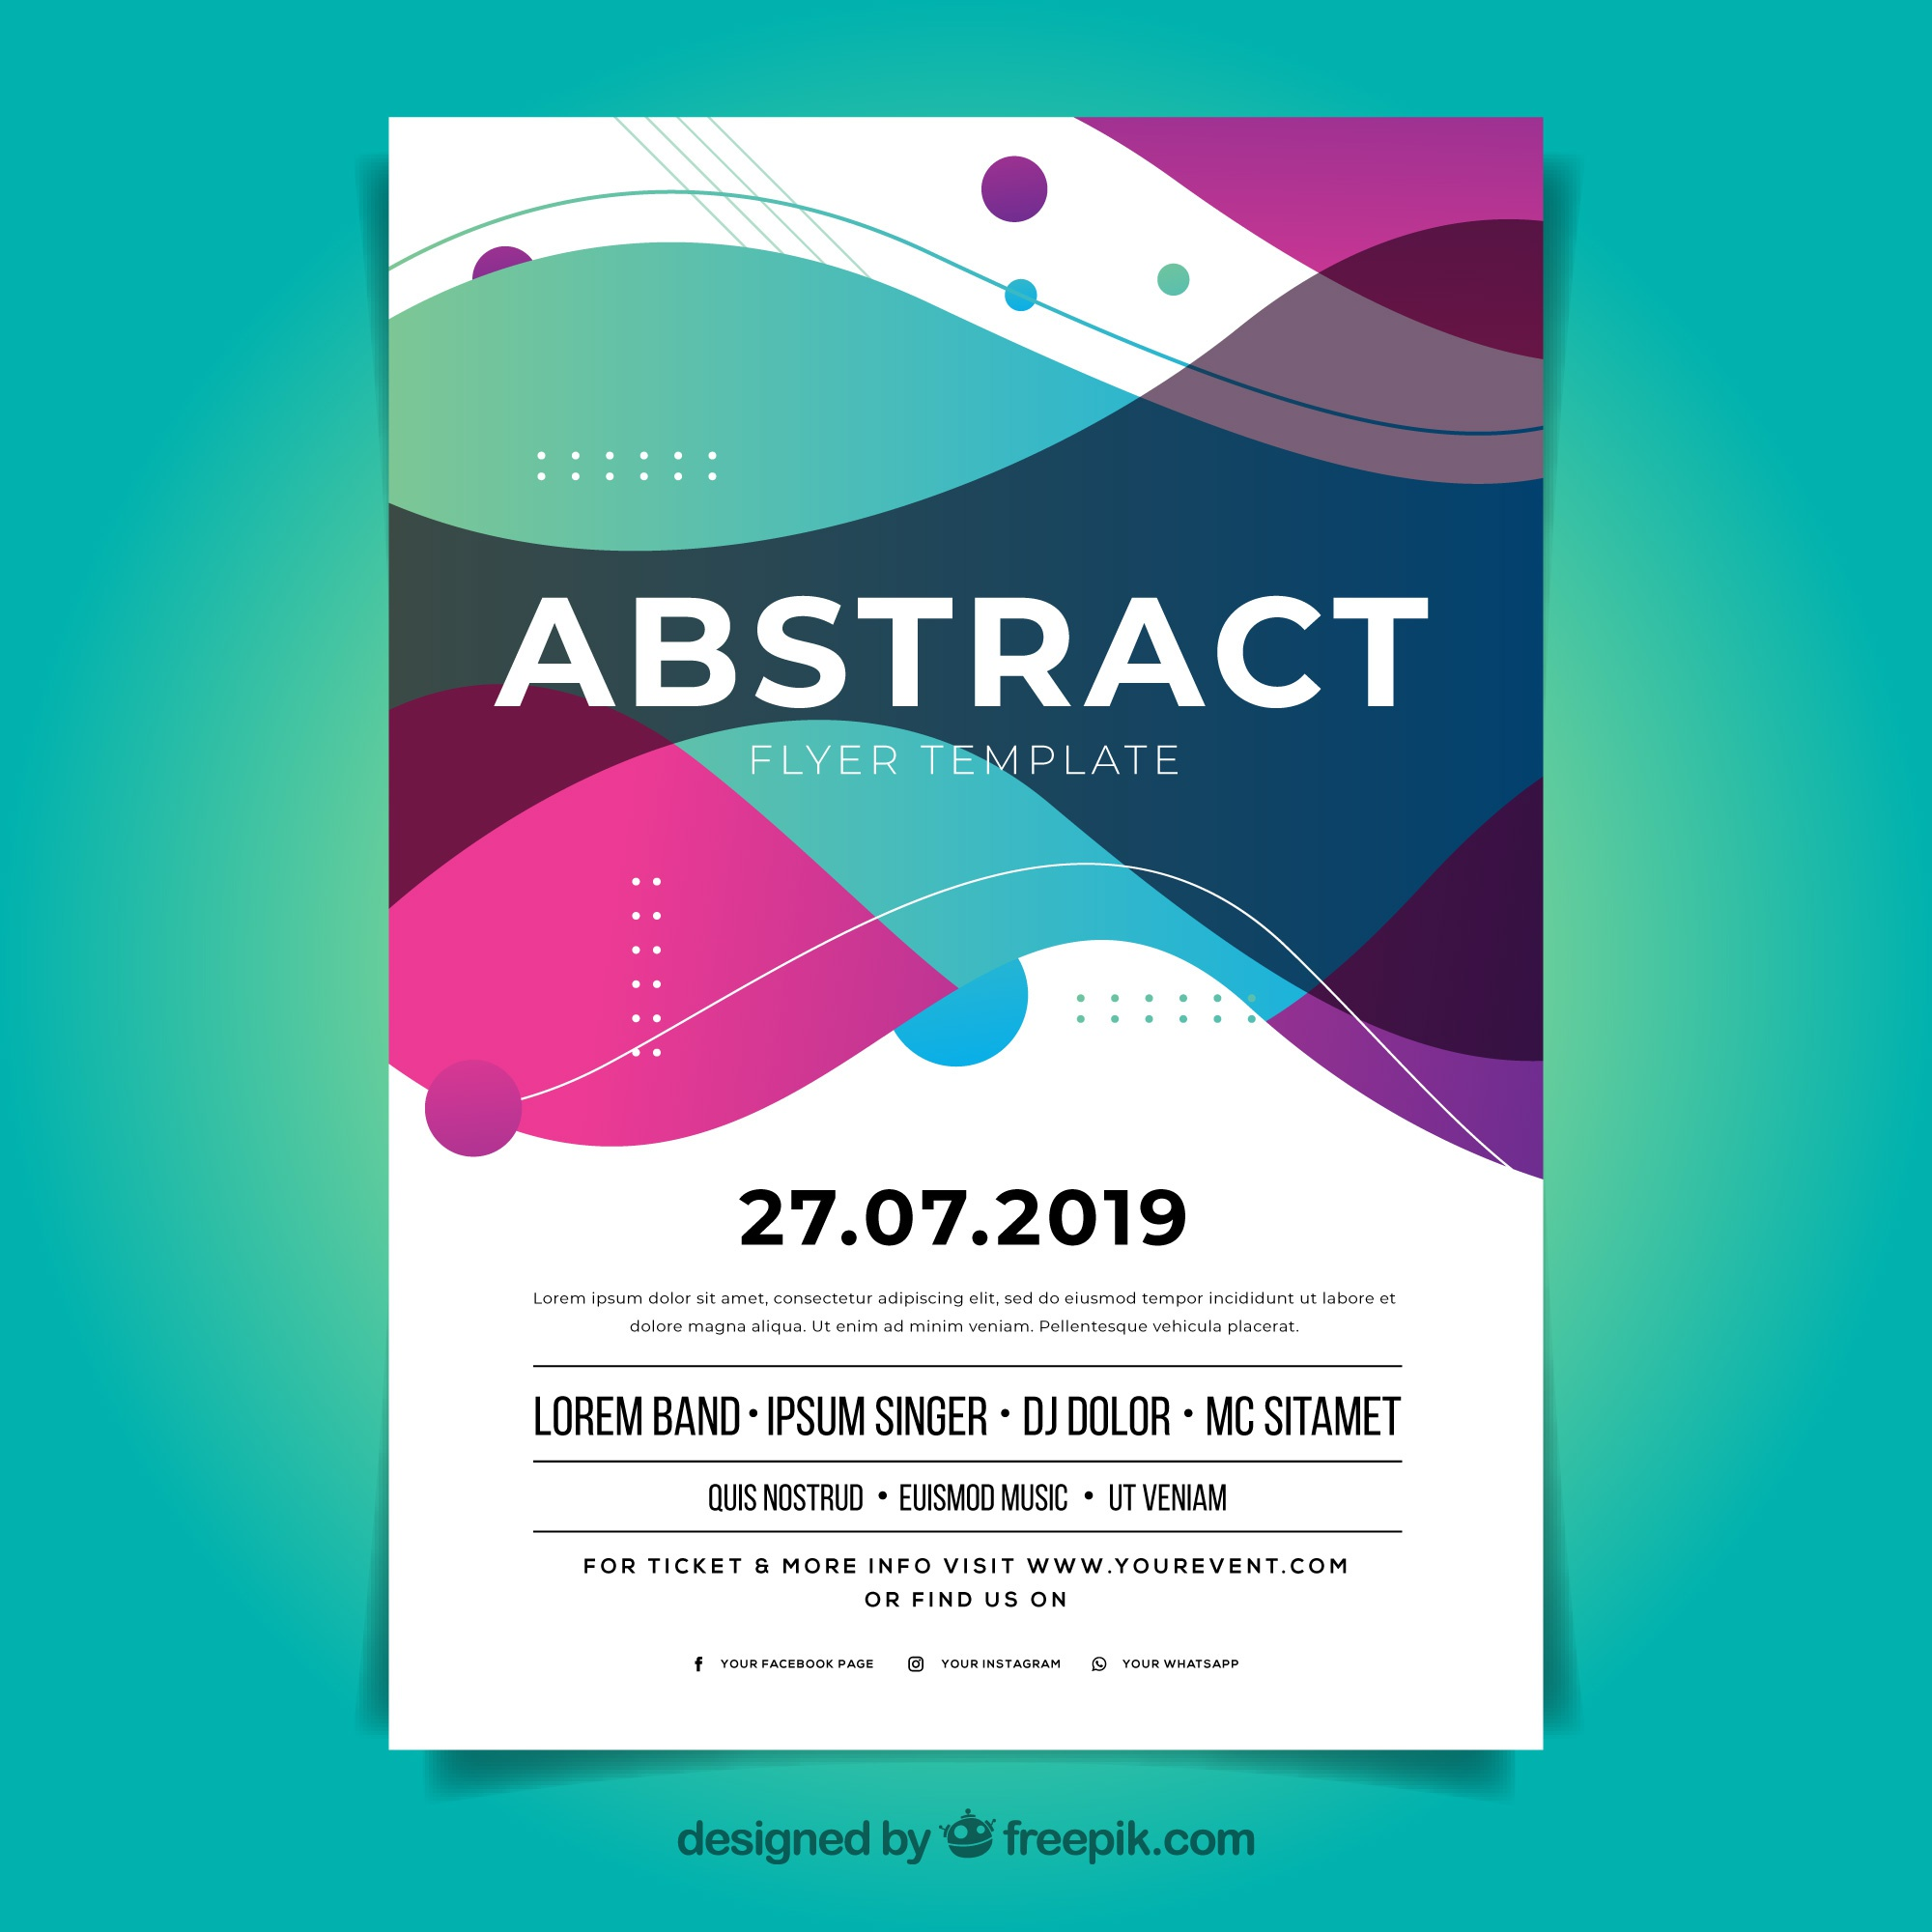 Abstract flyer template with flat design